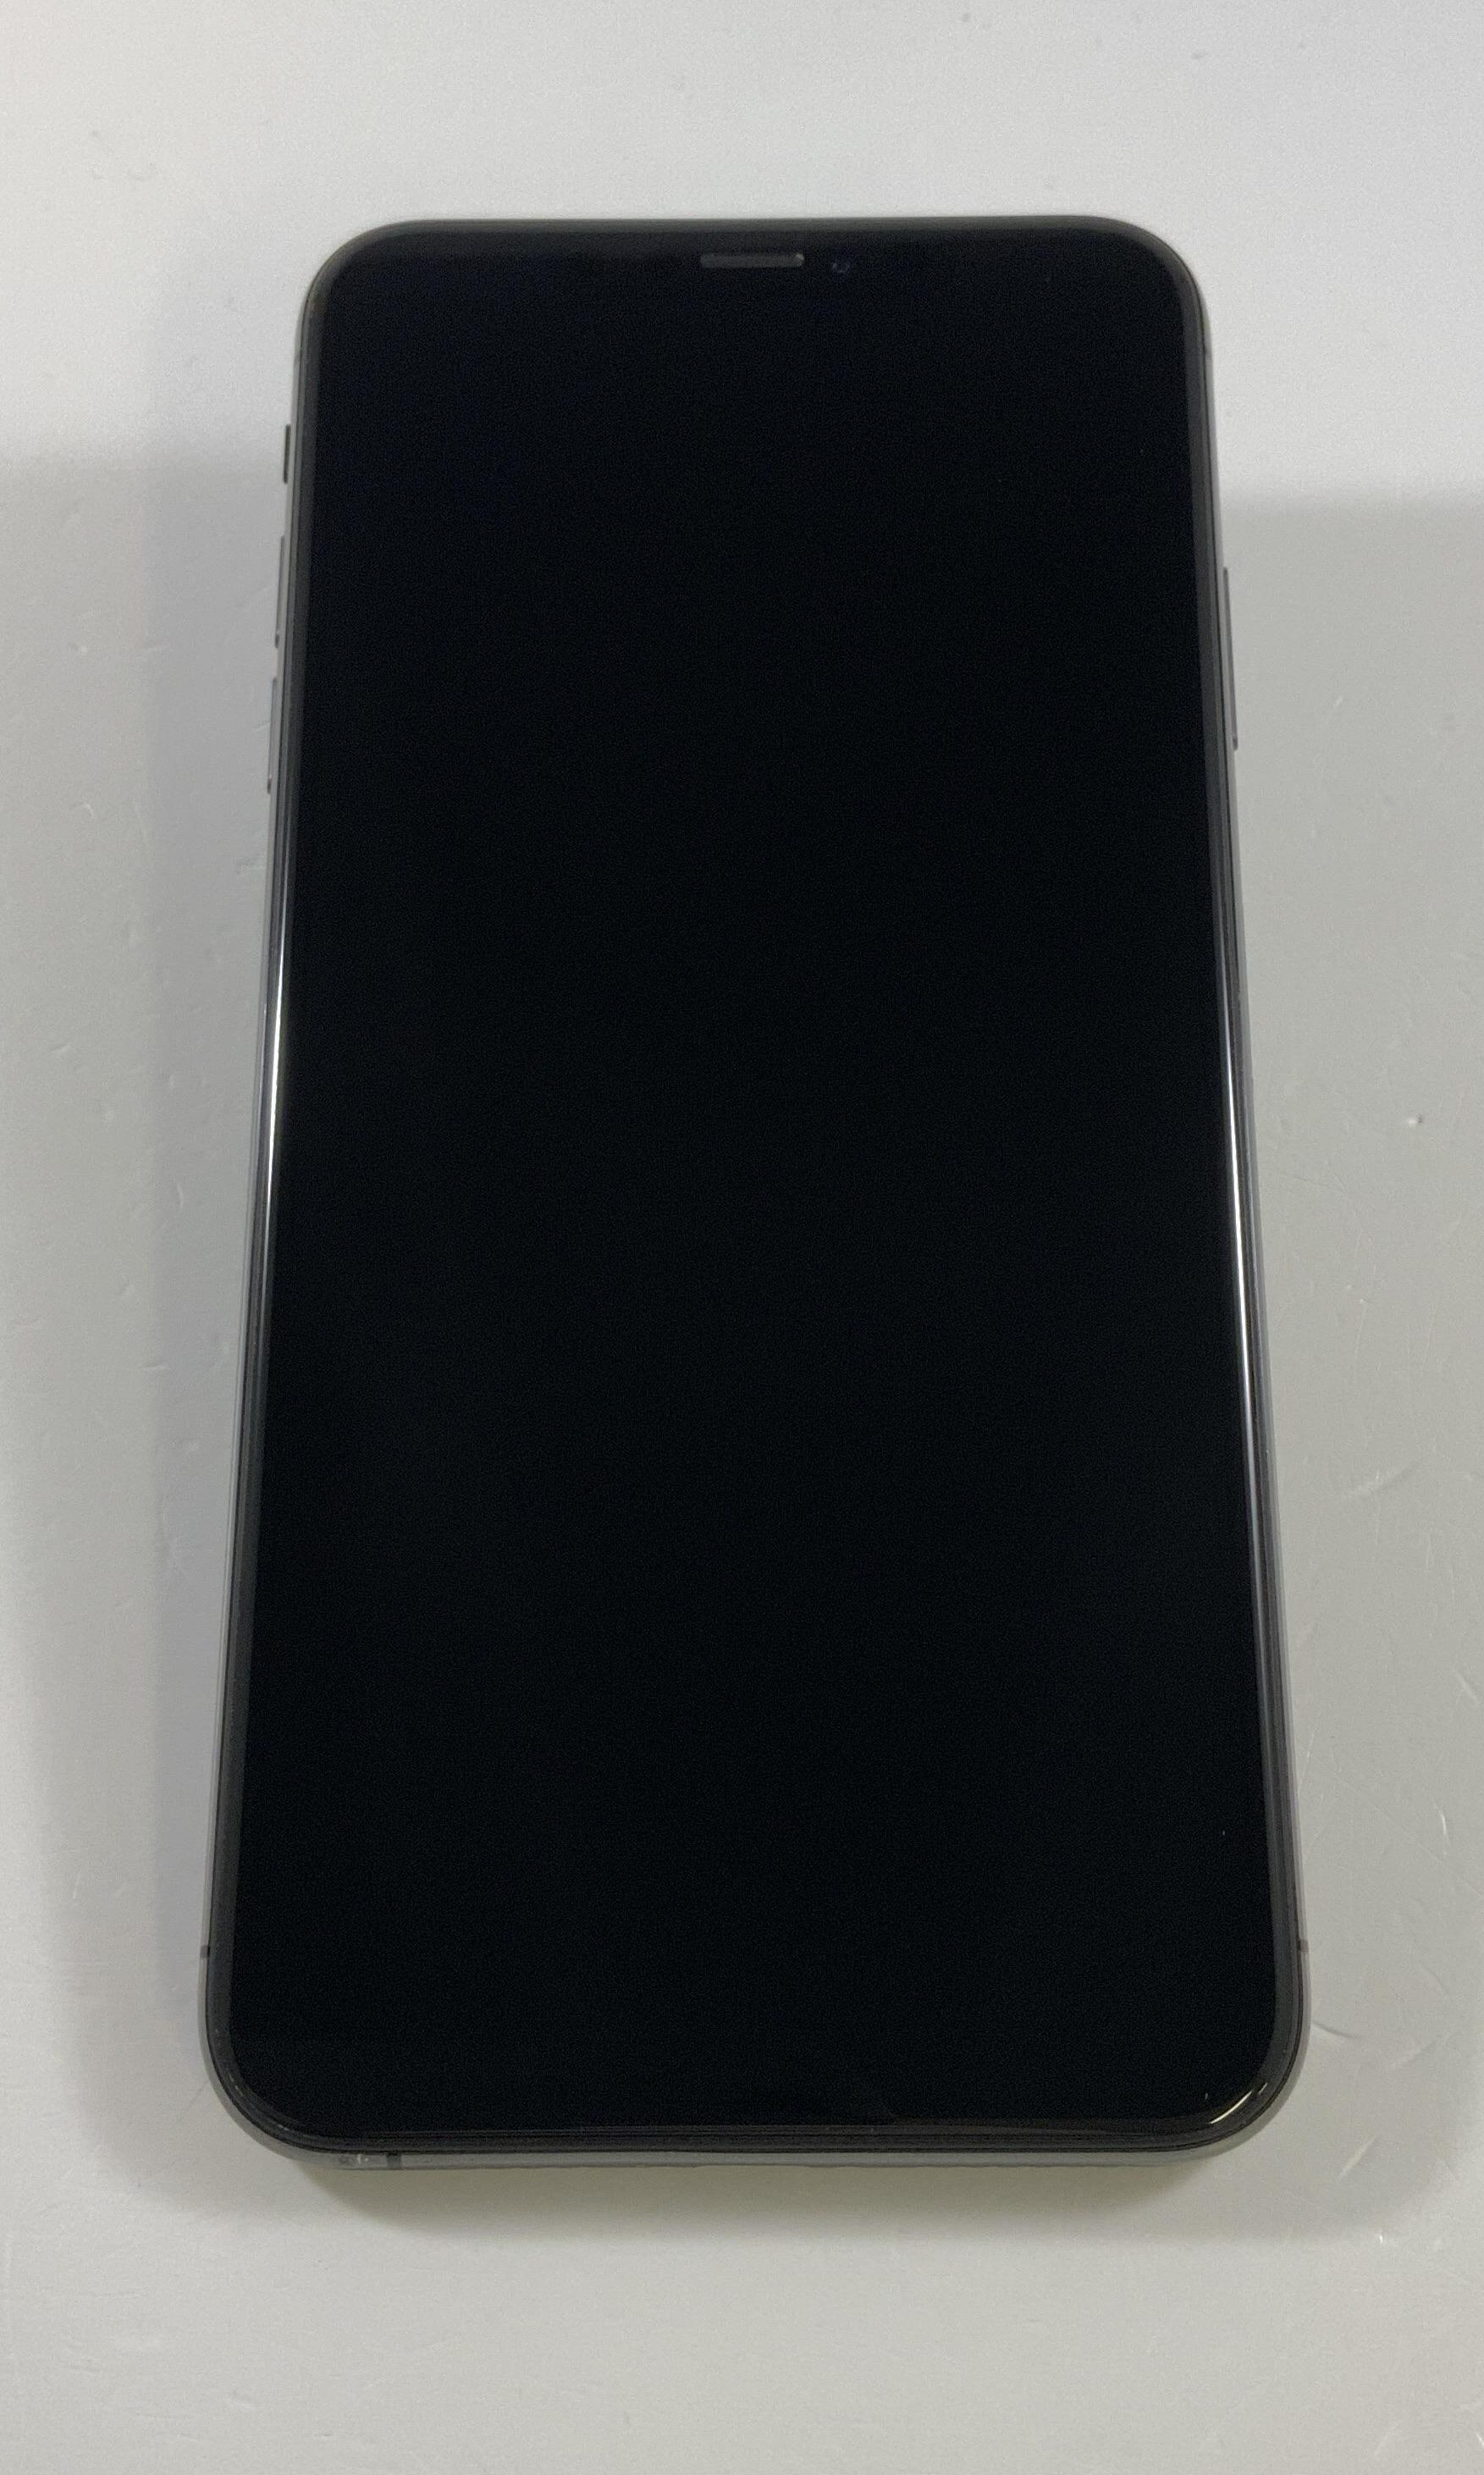 iPhone XS Max 256GB, 256GB, Space Gray, immagine 1